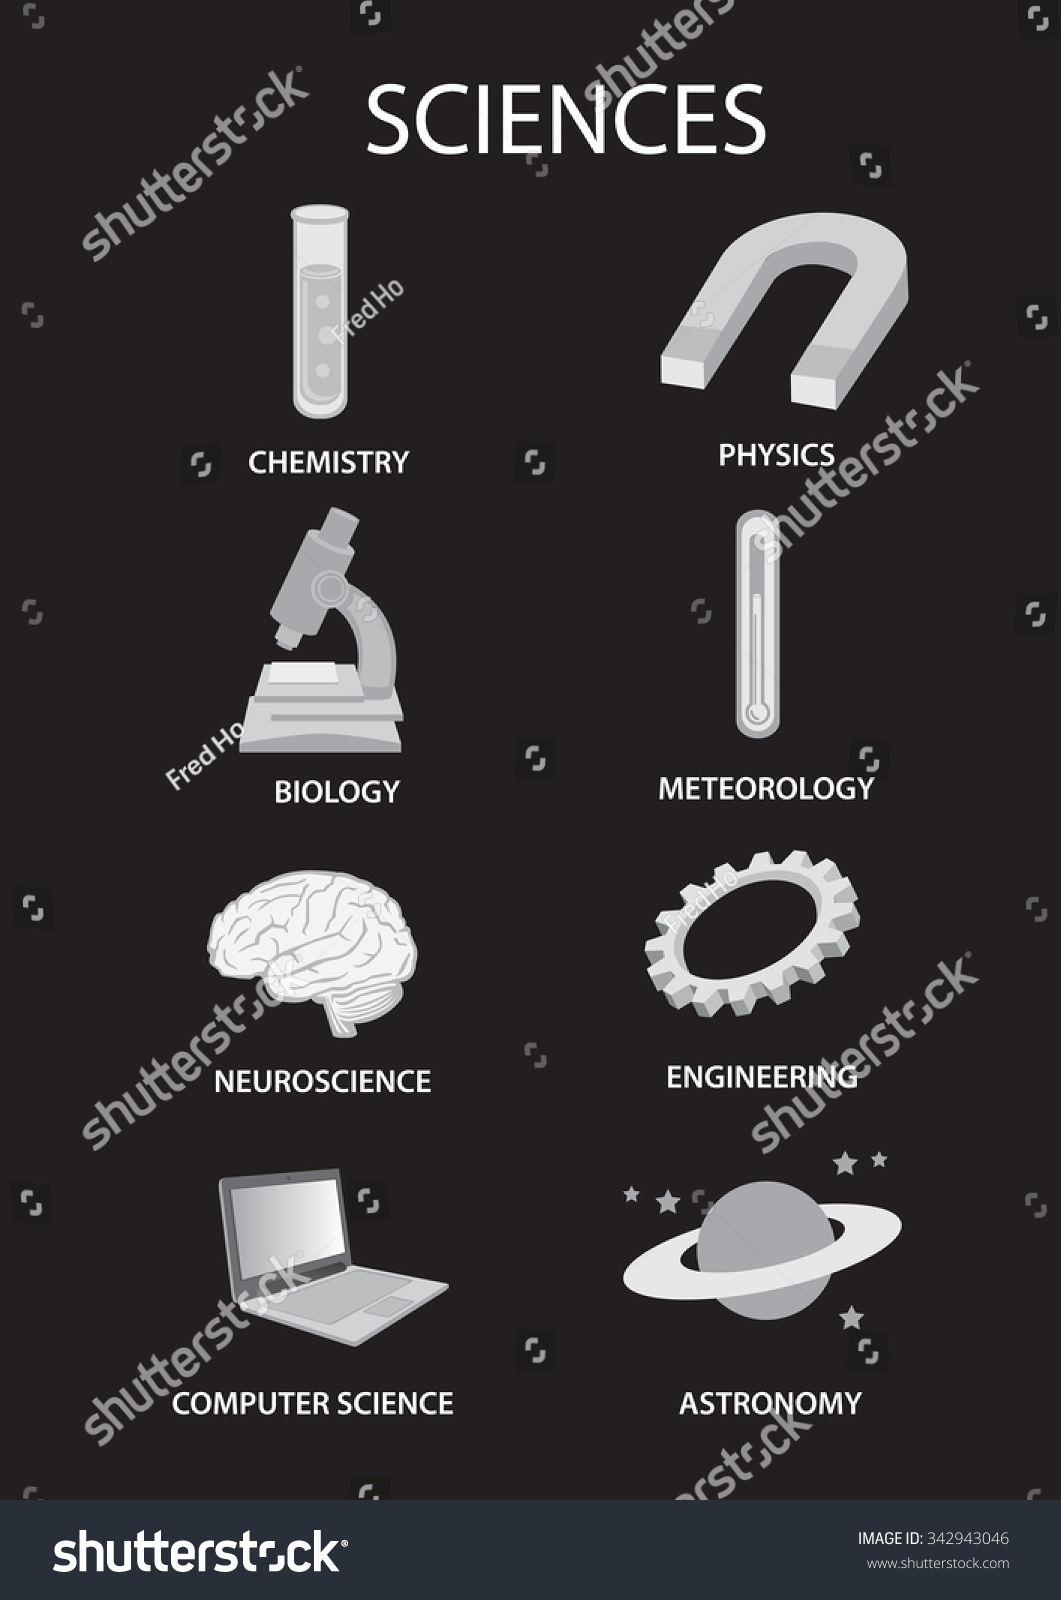 Iconic Symbols Represent Different Branches Science Stock Vector Royalty Free 342943046